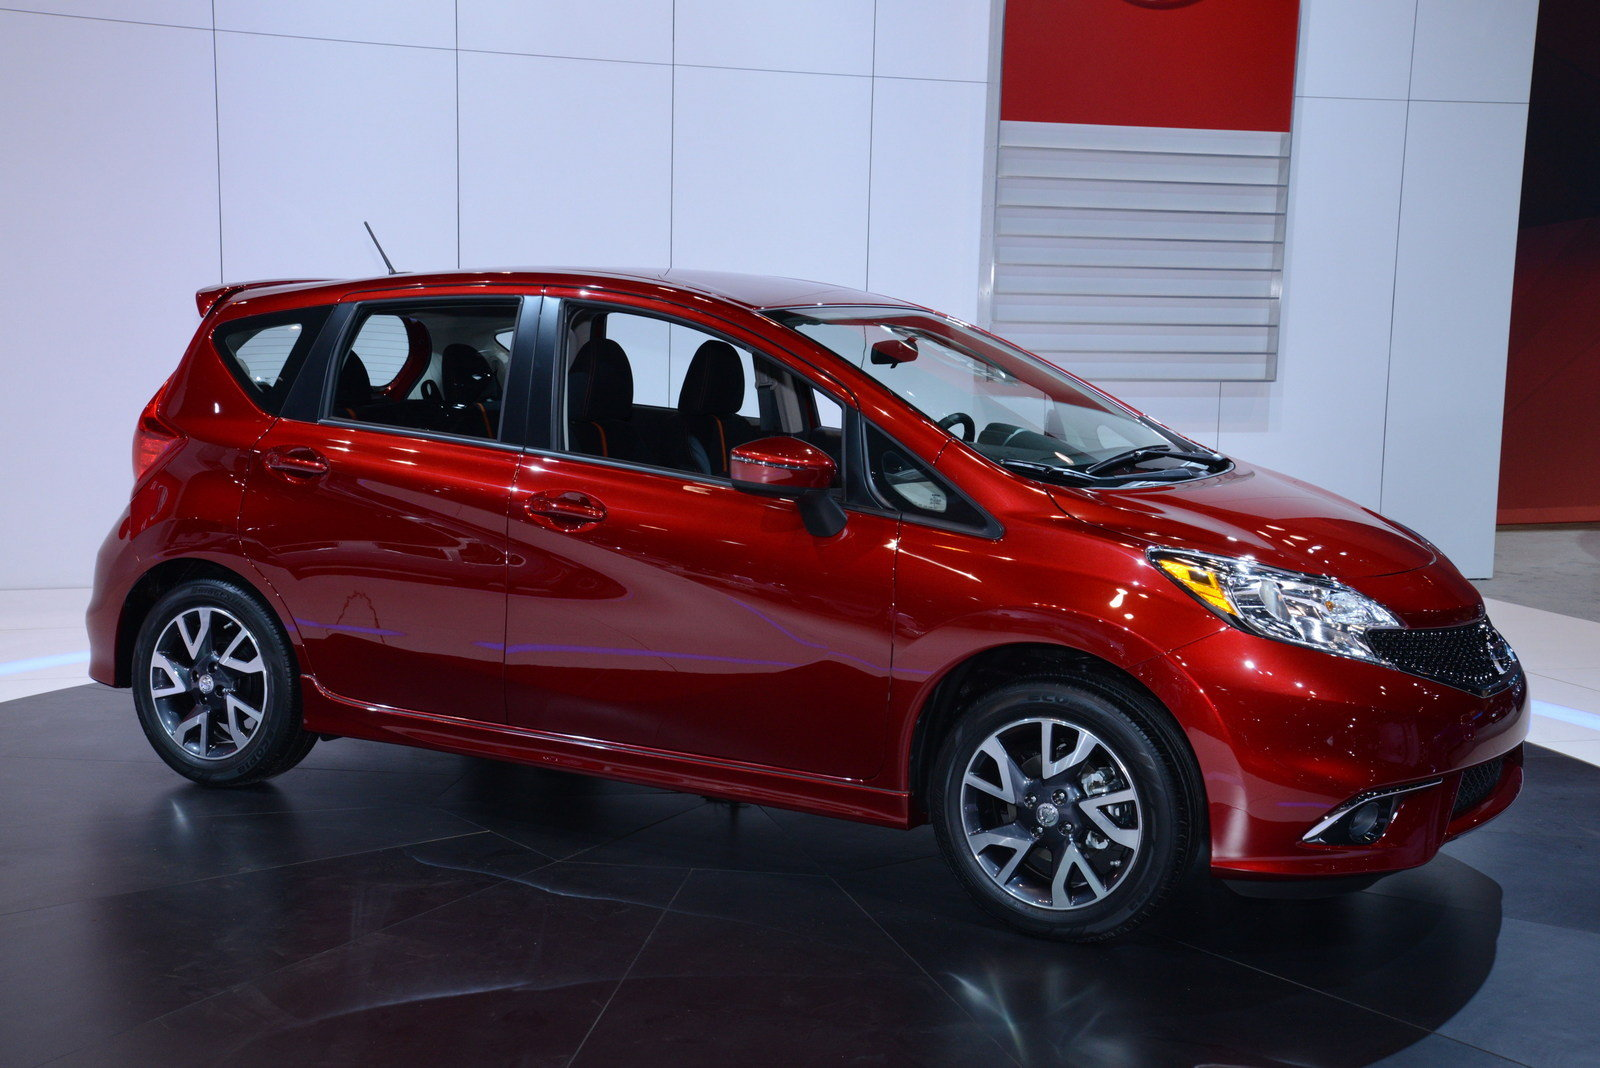 2018 nissan versa note prices incentives dealers truecar autos post. Black Bedroom Furniture Sets. Home Design Ideas